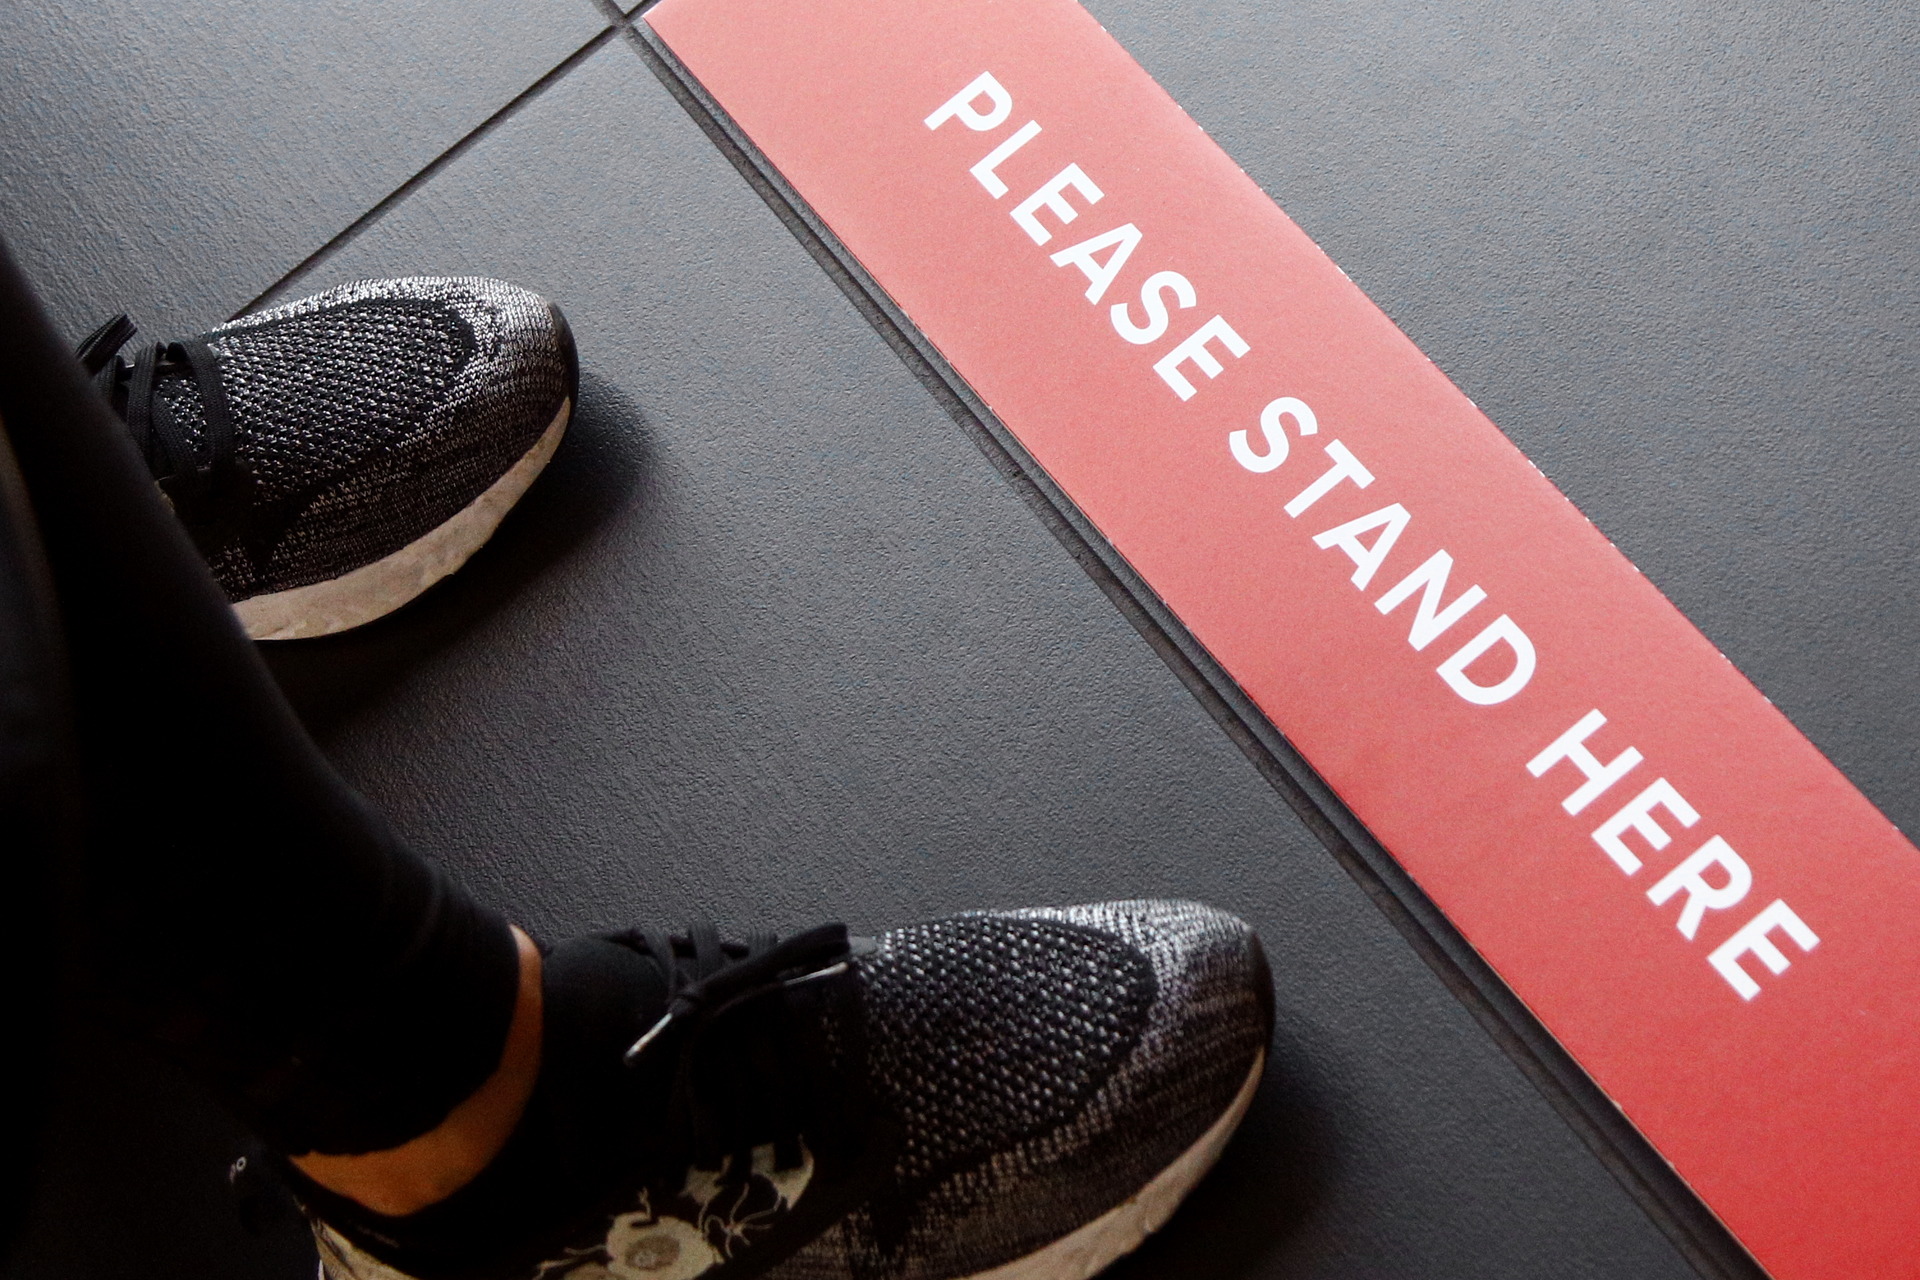 Sign showing people 6 feet apart